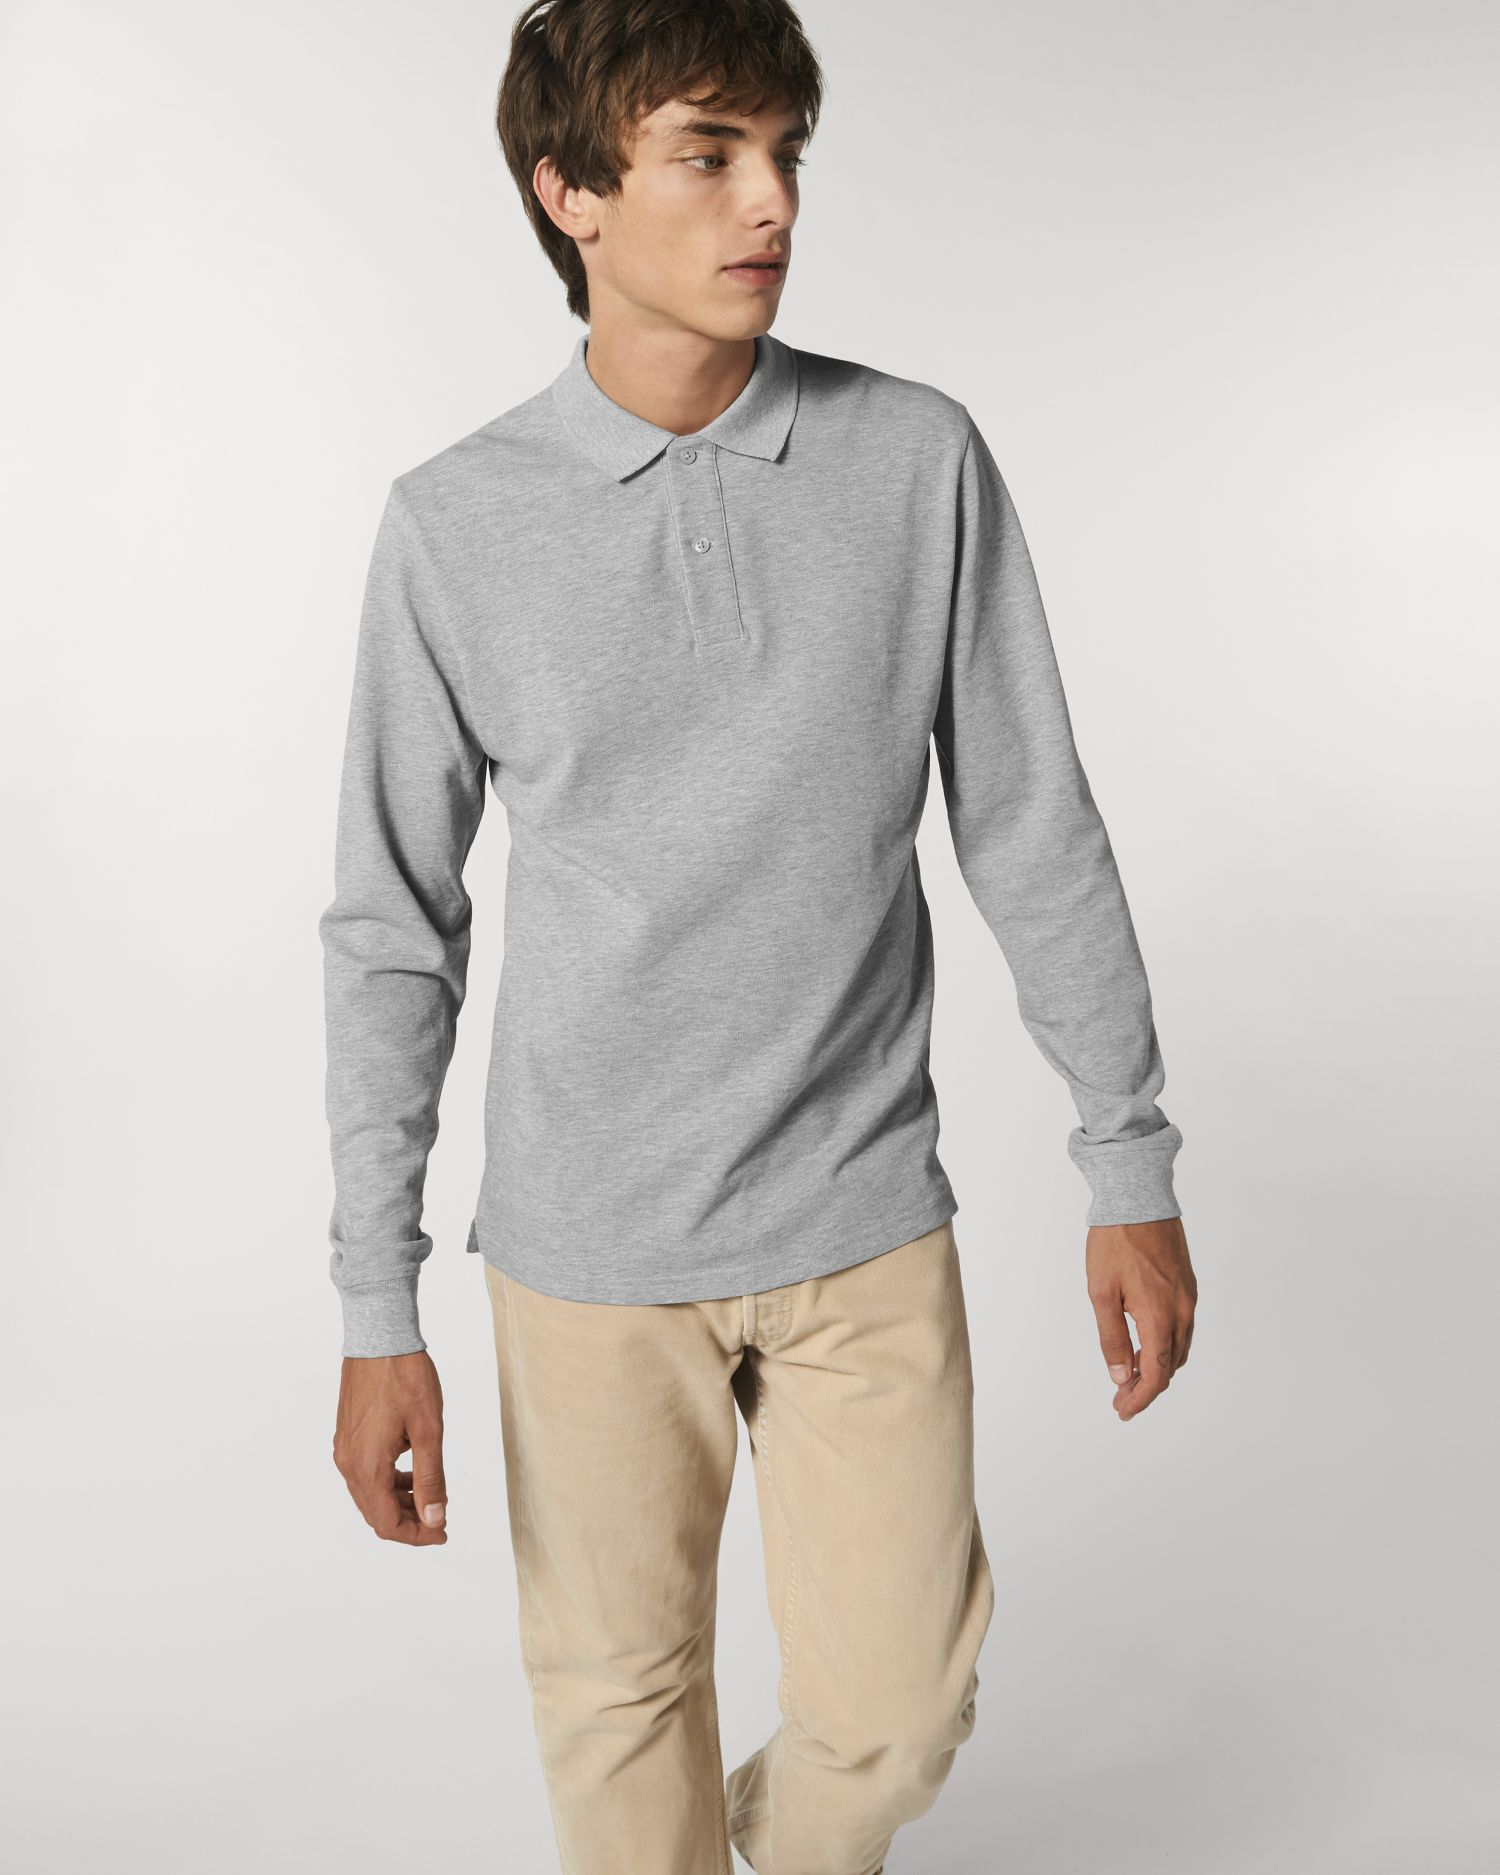 Stanley Dedicator Long Sleeve - Le polo homme manches longues